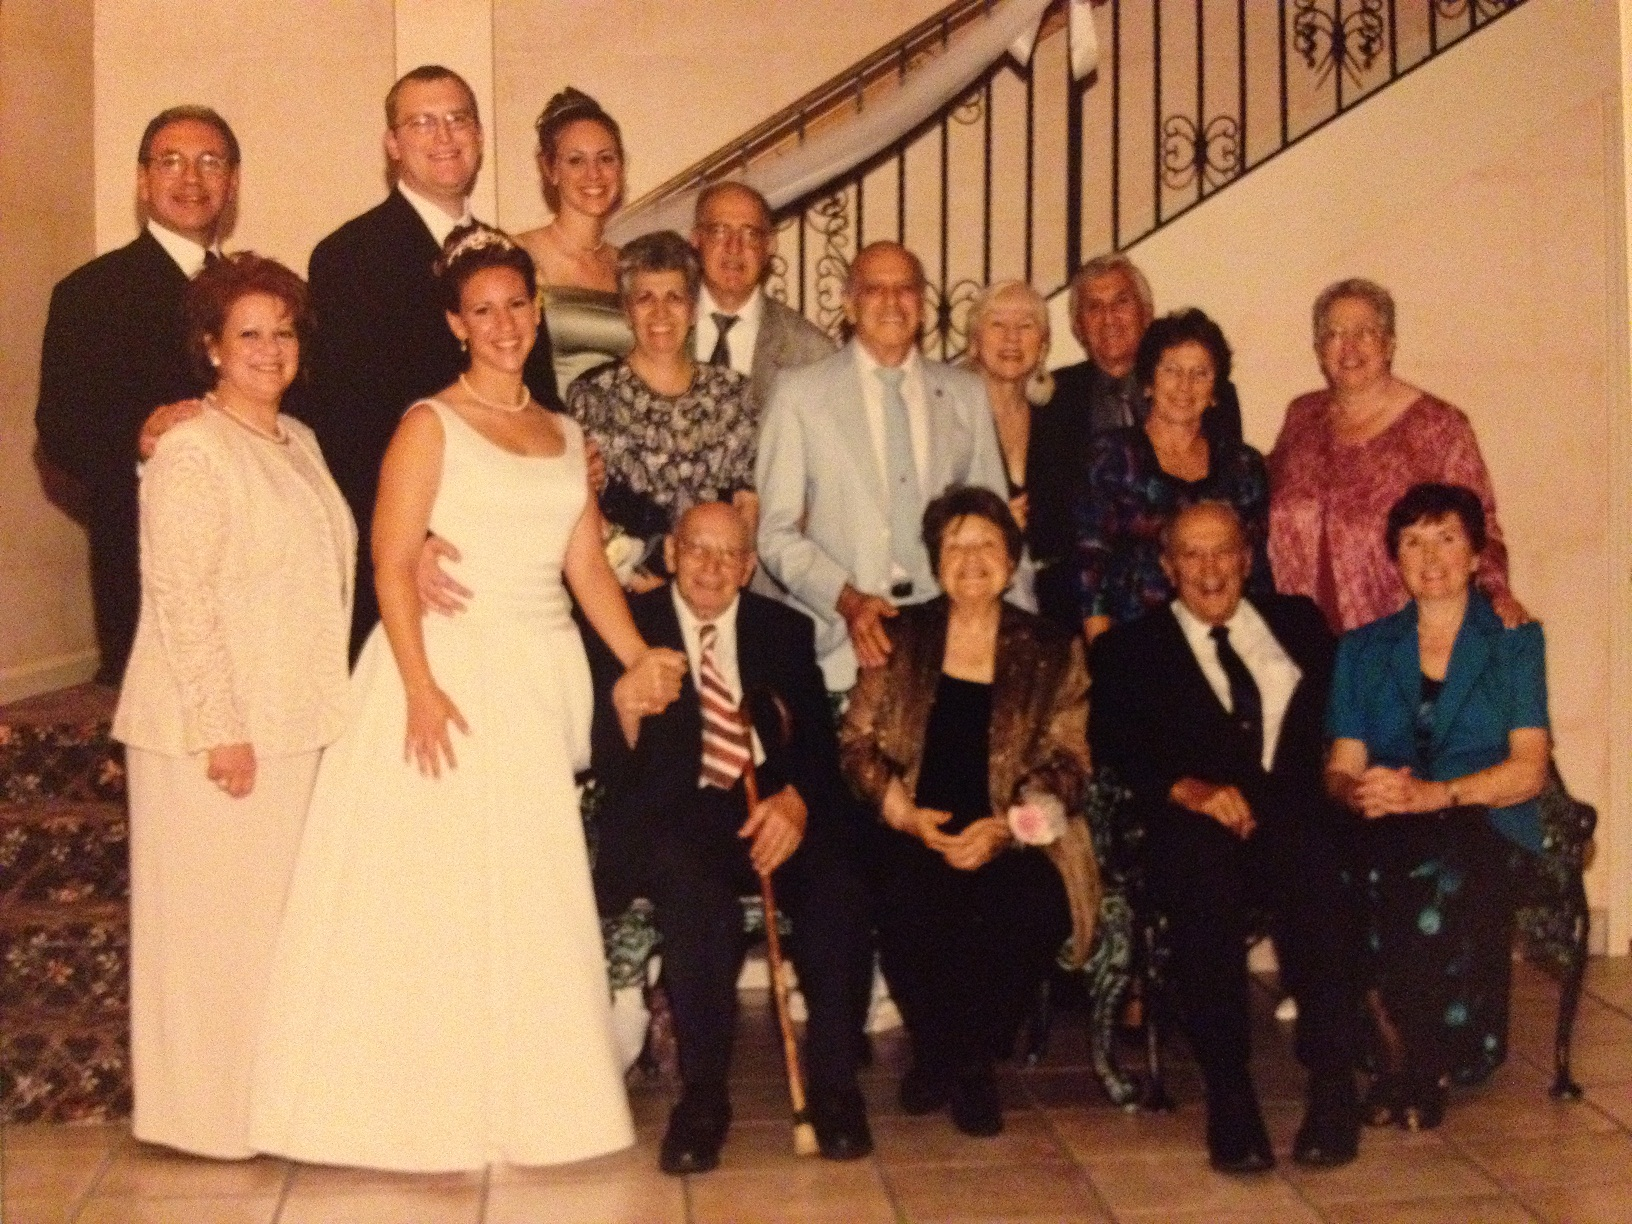 My wedding day, with all of my Father's Uncles and Aunts. (Uncle Jimmy is holding my hand.)